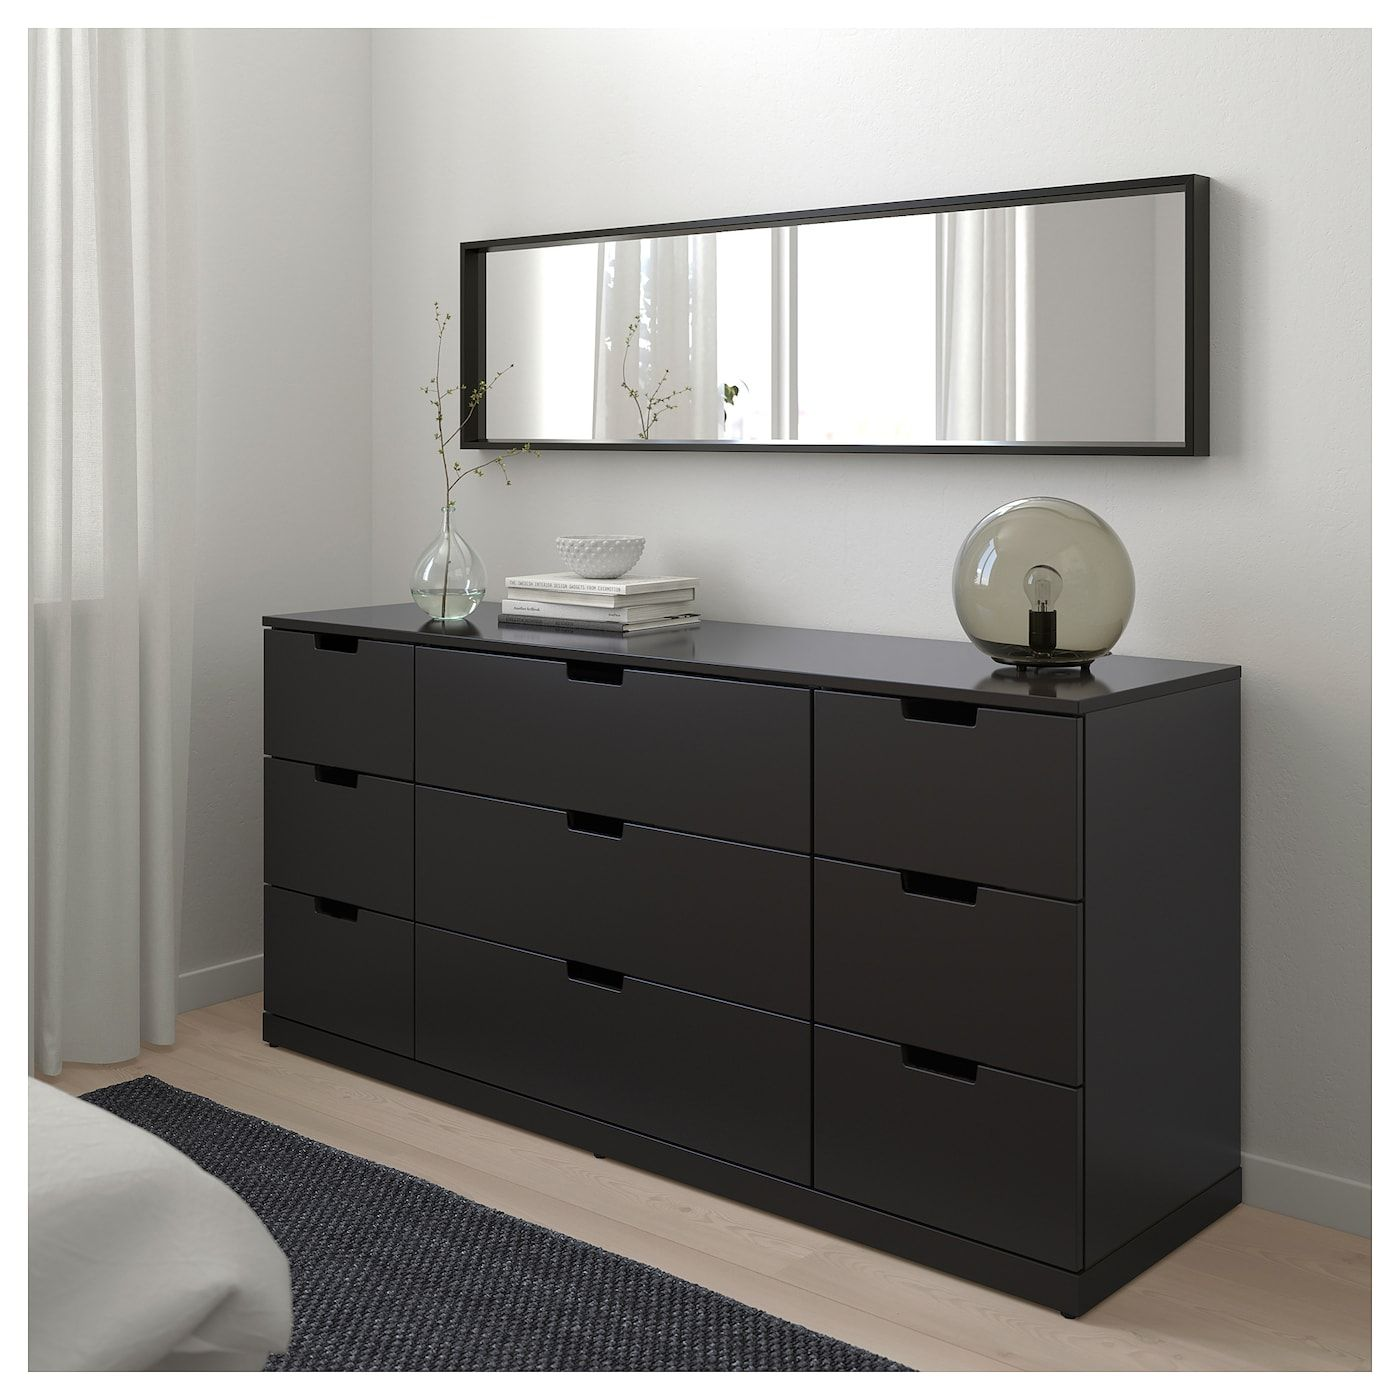 Nordli 9 Drawer Chest Anthracite 63x29 7 8 160x76 Cm Bedroom Storage For Small Rooms Storage Solutions Bedroom Bedroom Chest Of Drawers